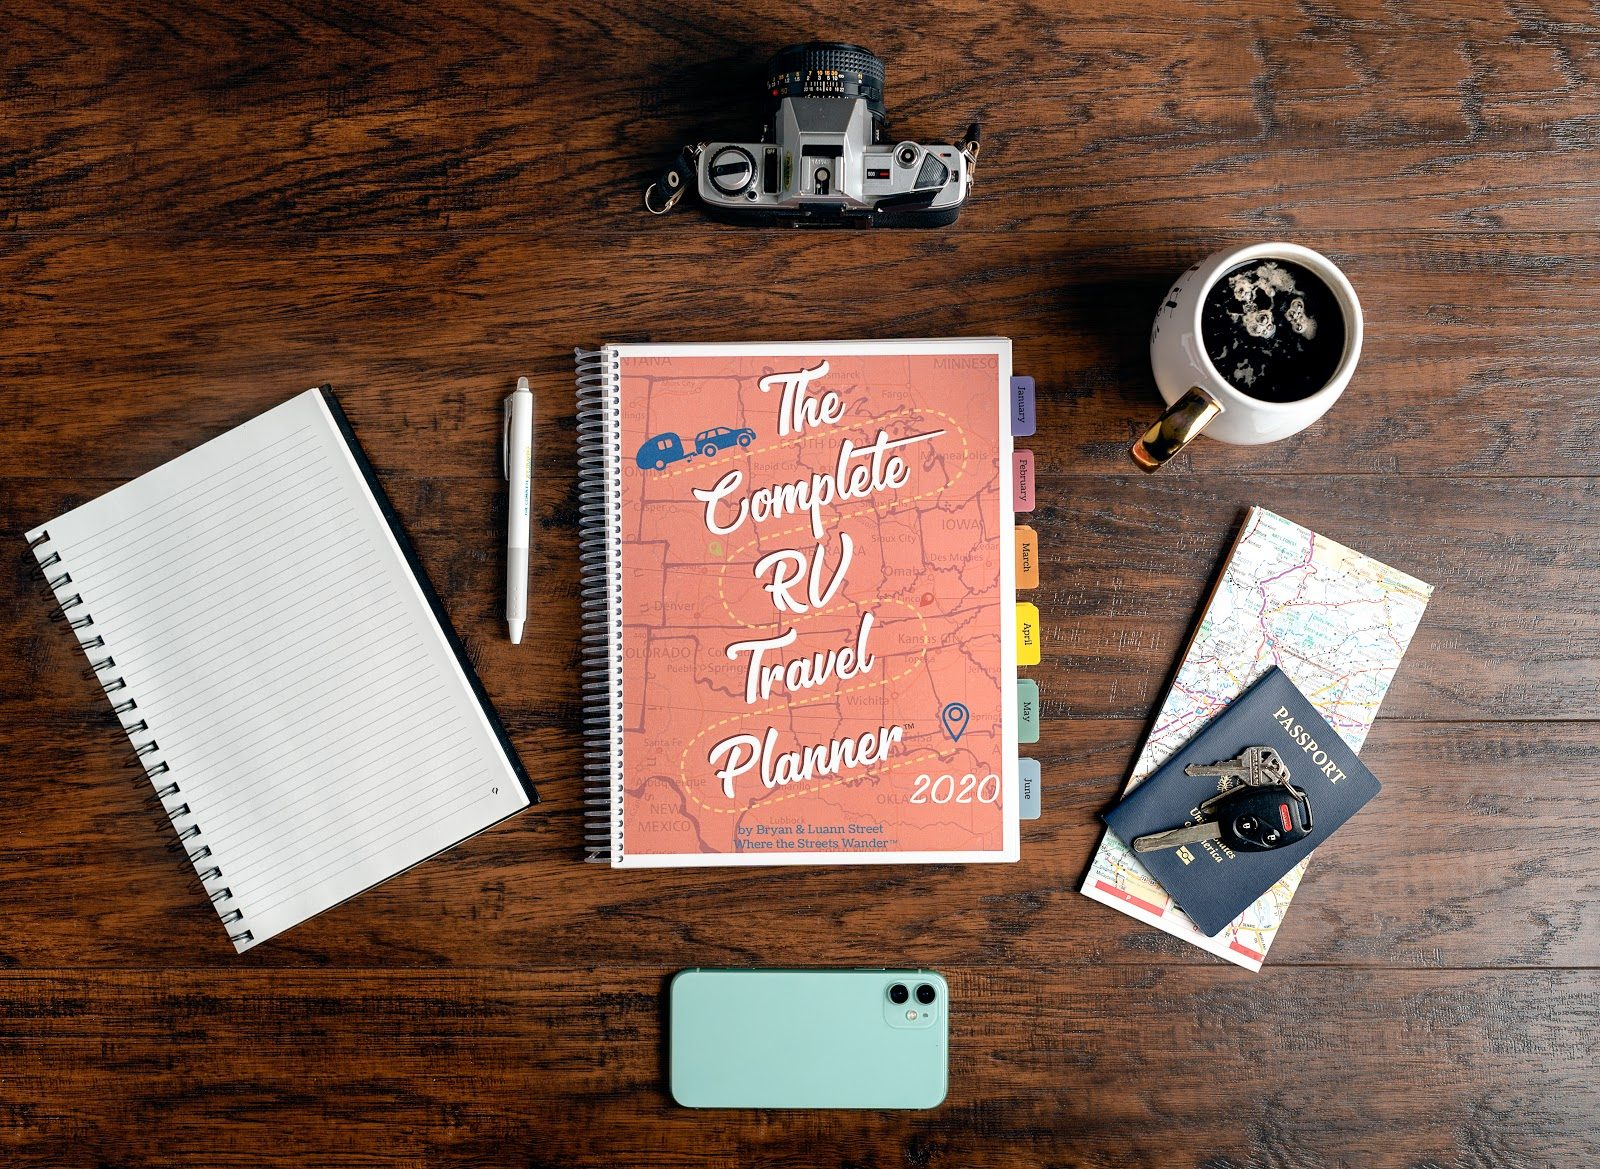 RV Travel Planner: How To Create An RV Travel Plan